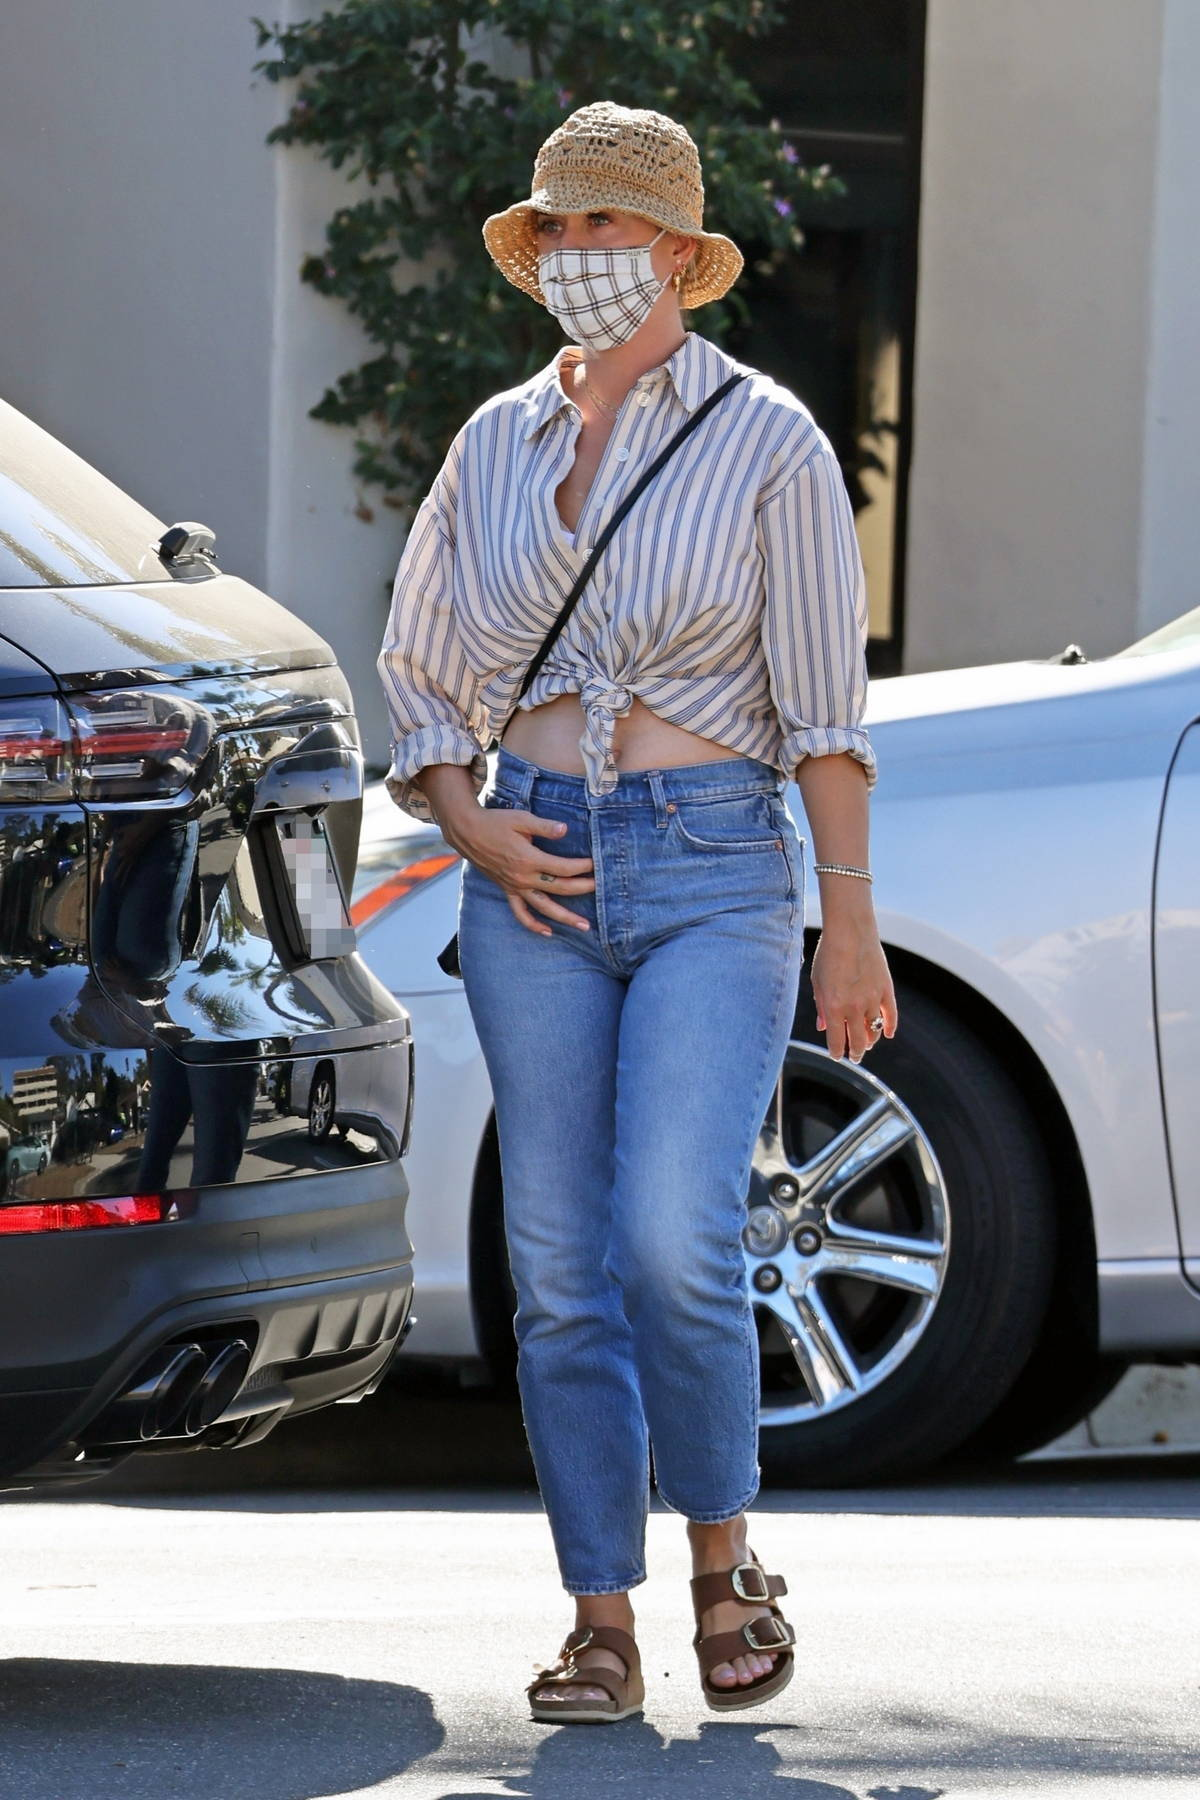 Katy Perry wears a knotted shirt and jeans while out shopping in Santa Barbara, California